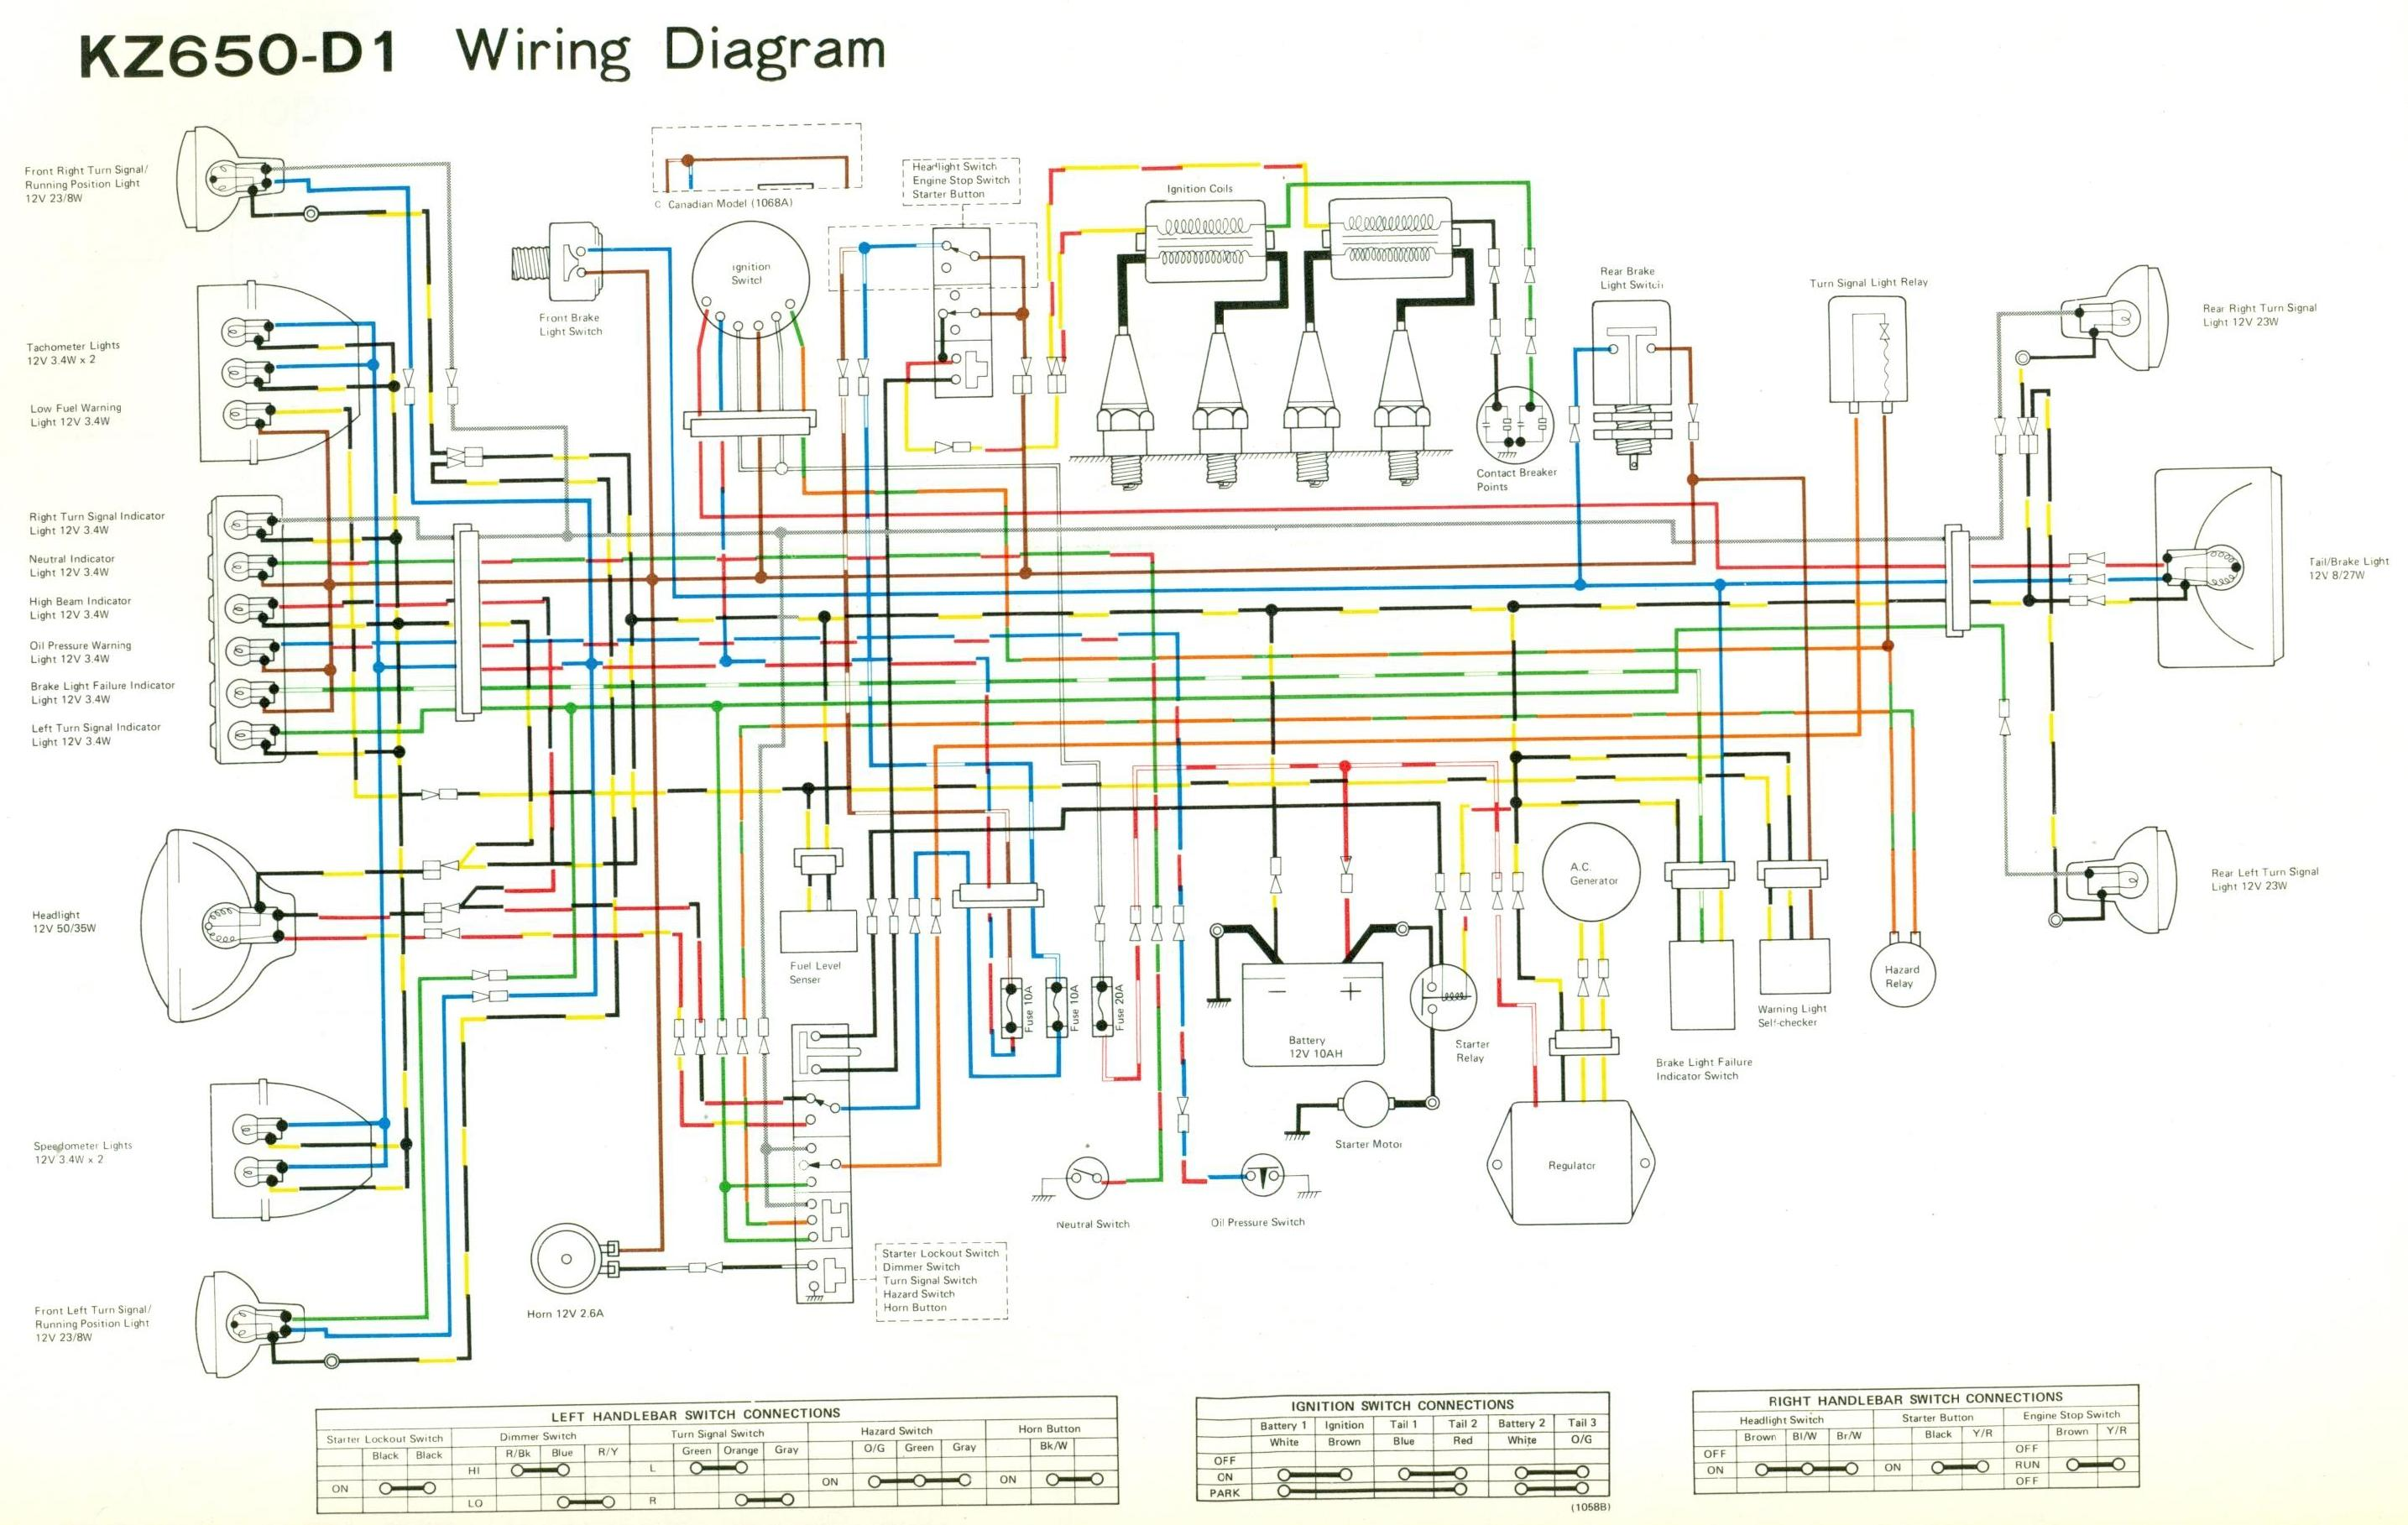 motorcycle transmission wiring diagram 6 3 asyaunited de \u2022 C7500 Brake Light Wiring Diagram wiring diagrams further motorcycle transmission parts diagram 20 rh 20 geuzencollege examentraining nl 45rfe transmission wiring diagram allison 1000